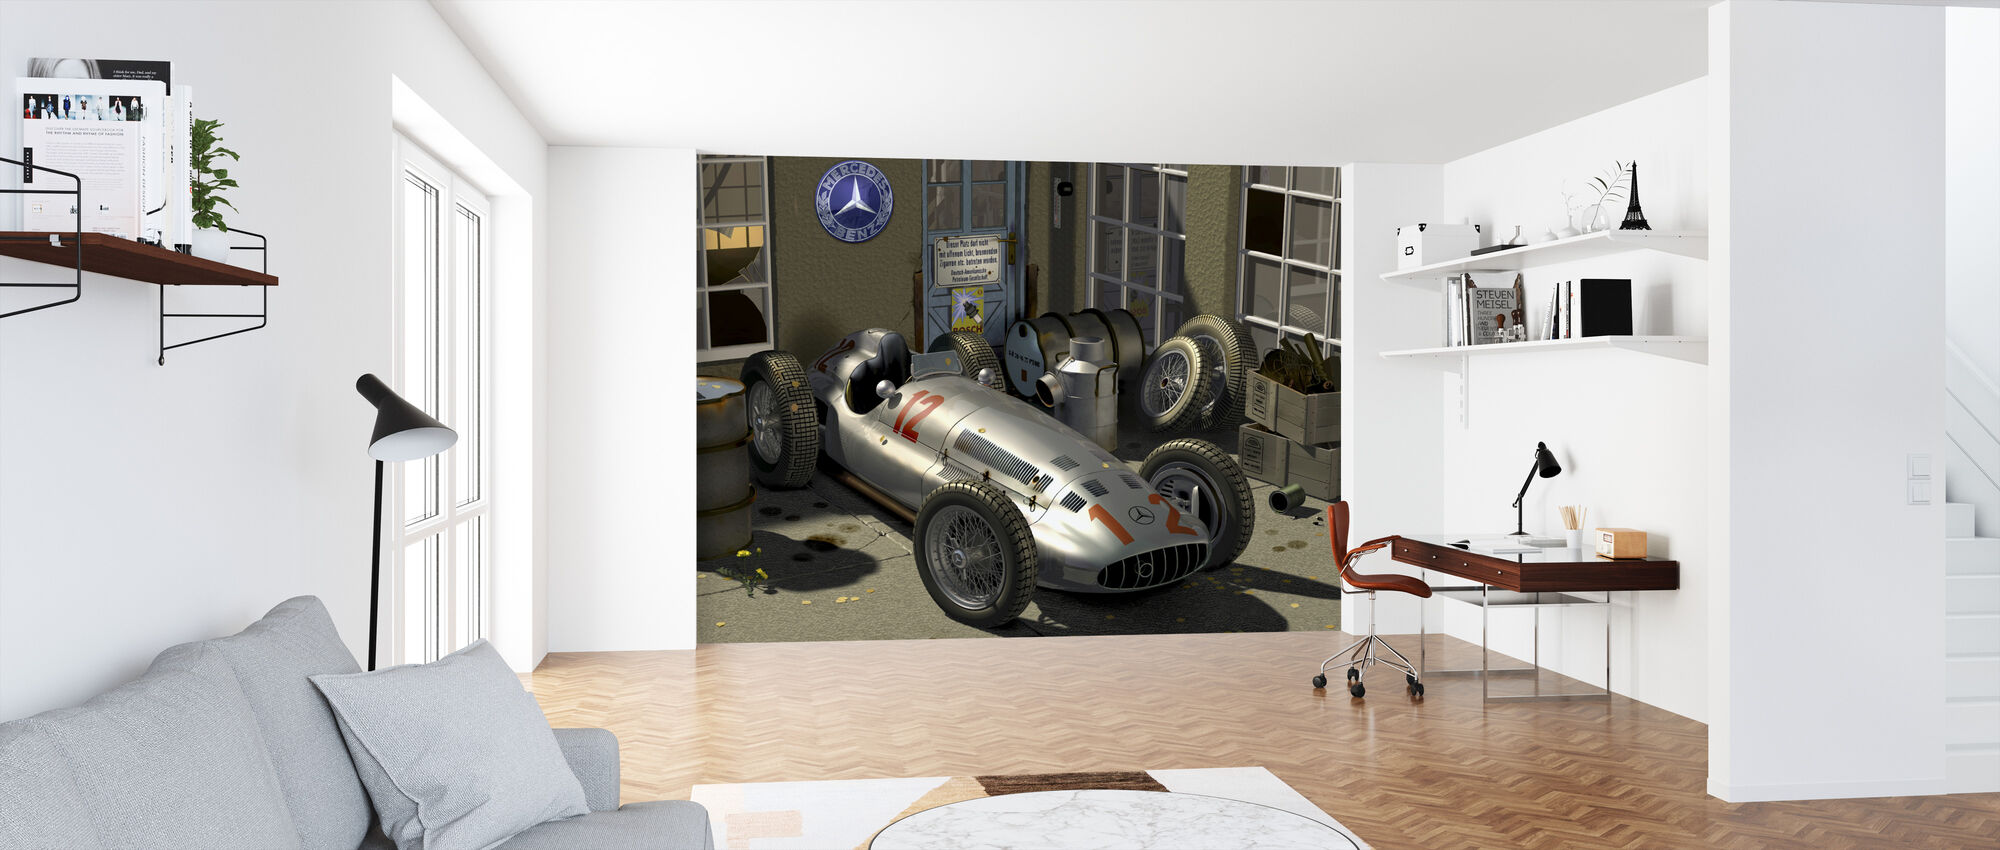 Carriage - Wallpaper - Office